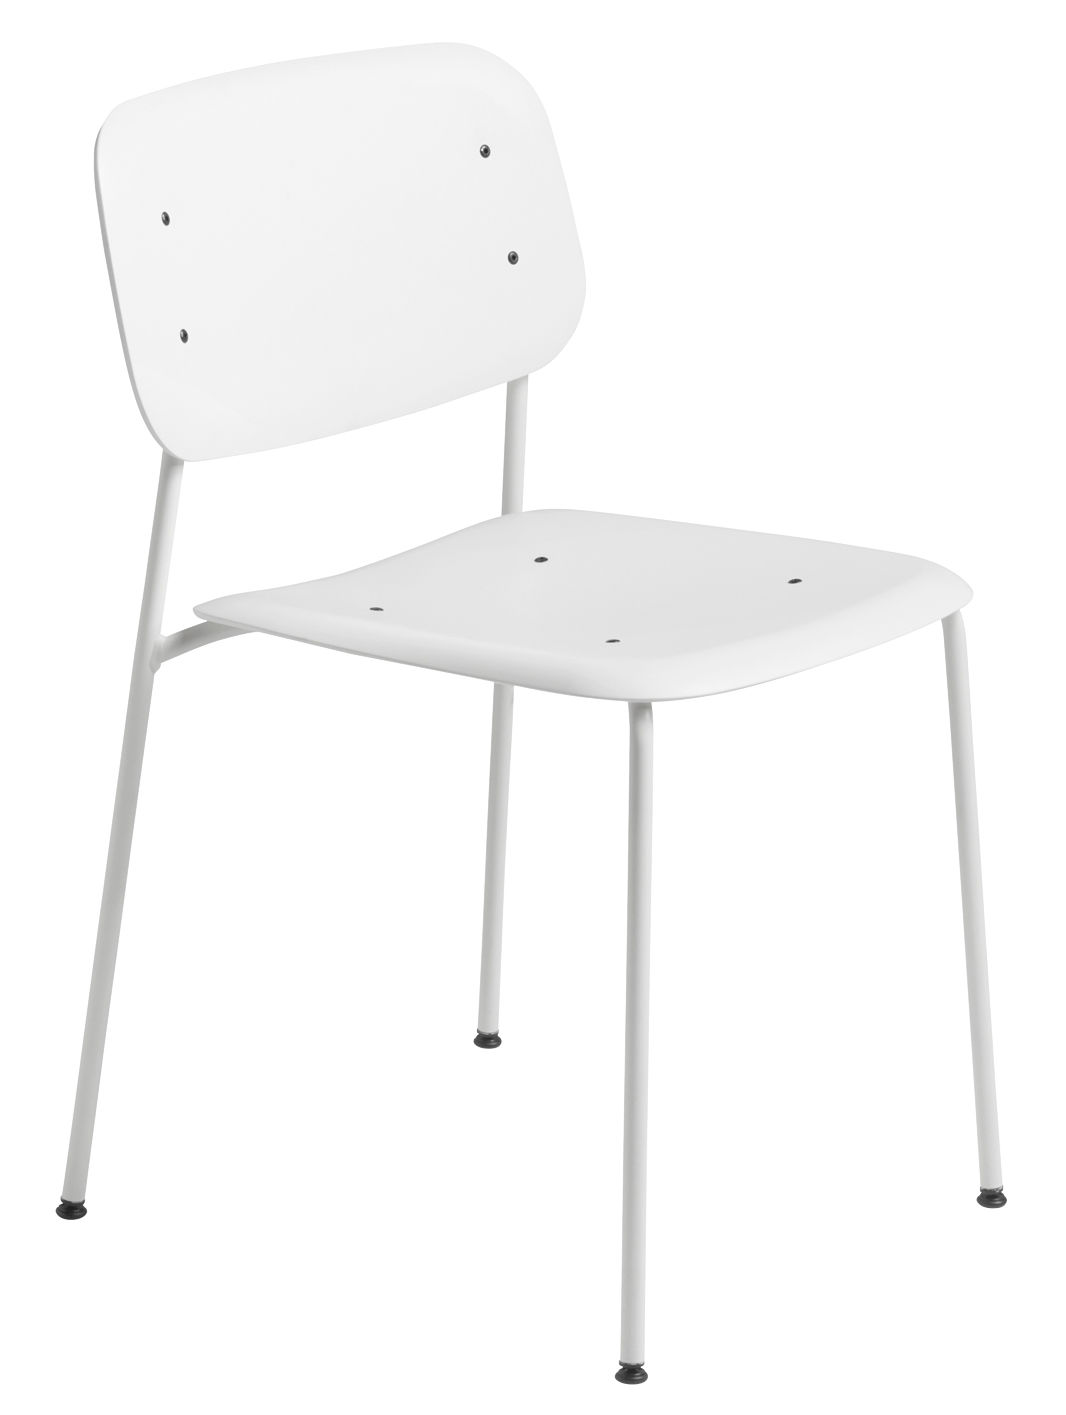 Furniture - Chairs - Soft Edge P10 Stacking chair - / Metal & plastic by Hay - White / White legs - Lacquered steel, Polypropylene